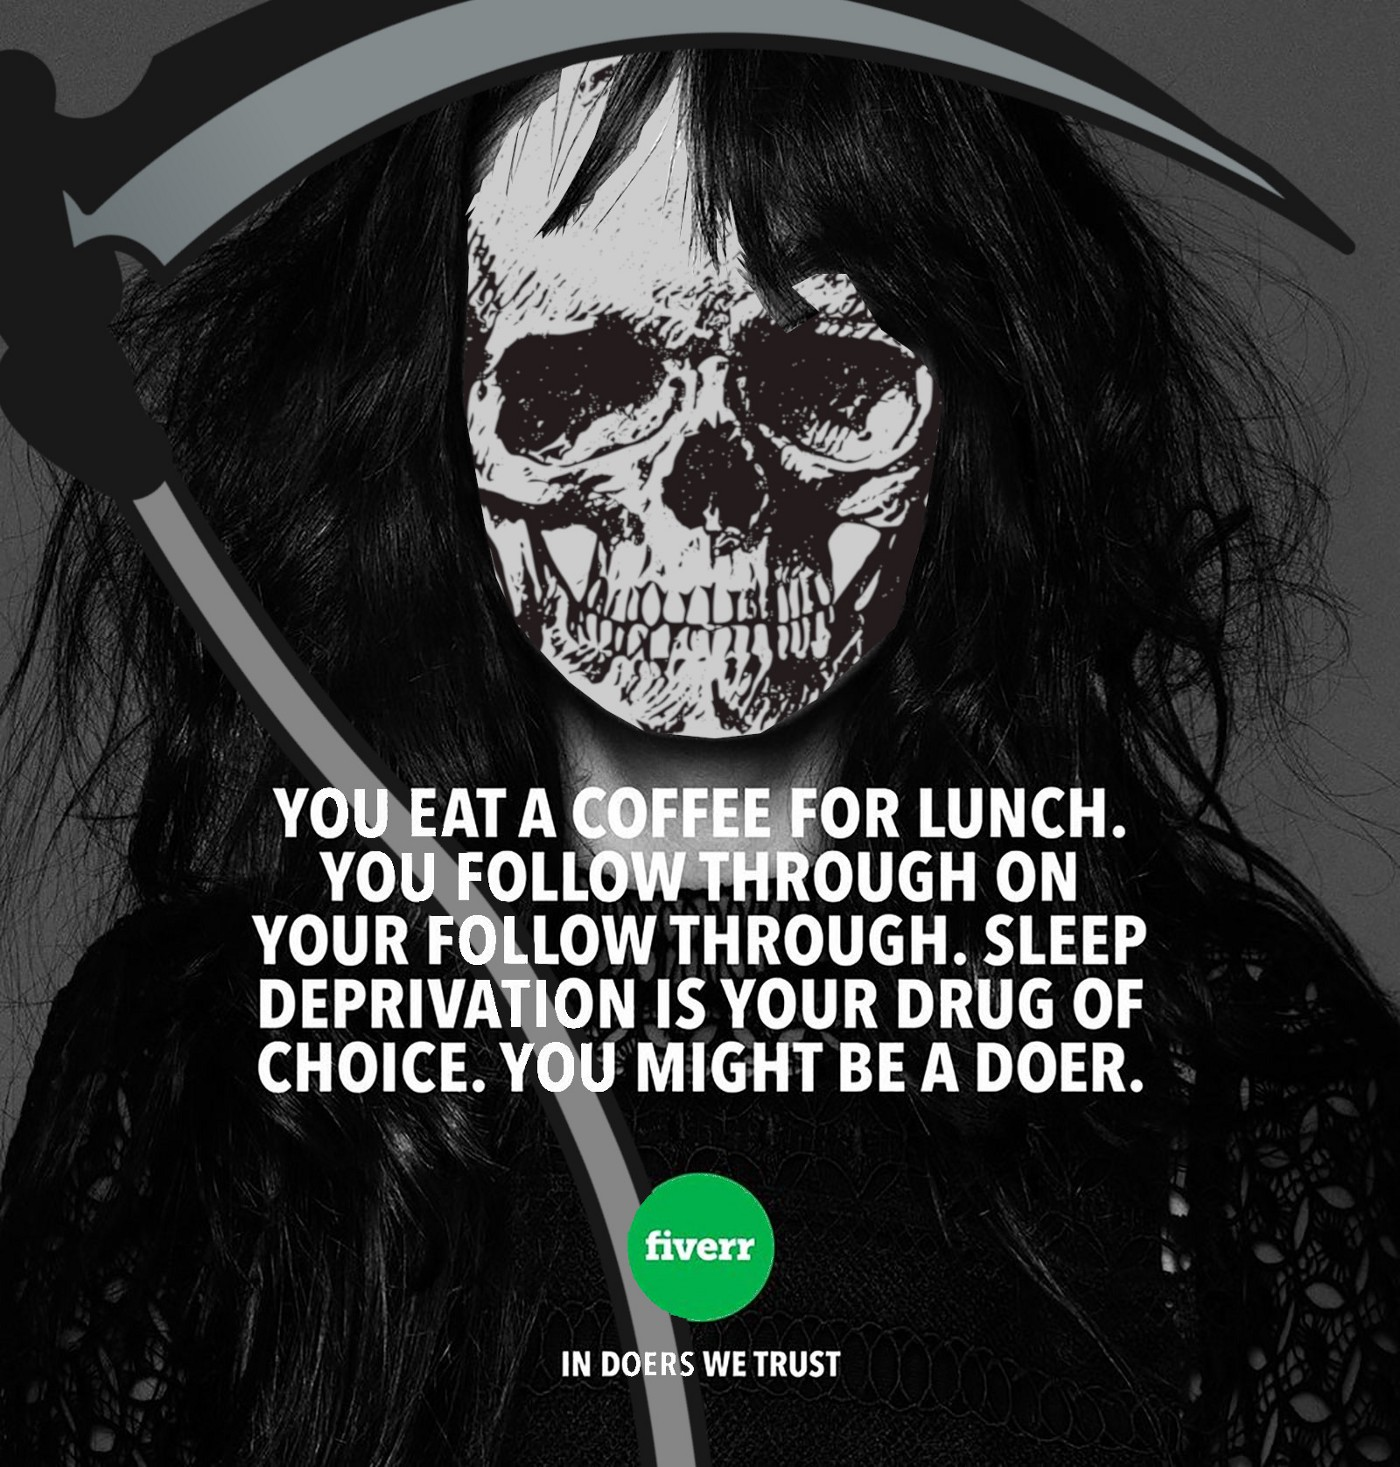 Fiverr's infamous 'You Might Be a Doer' ad. The model's face has been replaced with a skull and she is clutching a scythe.